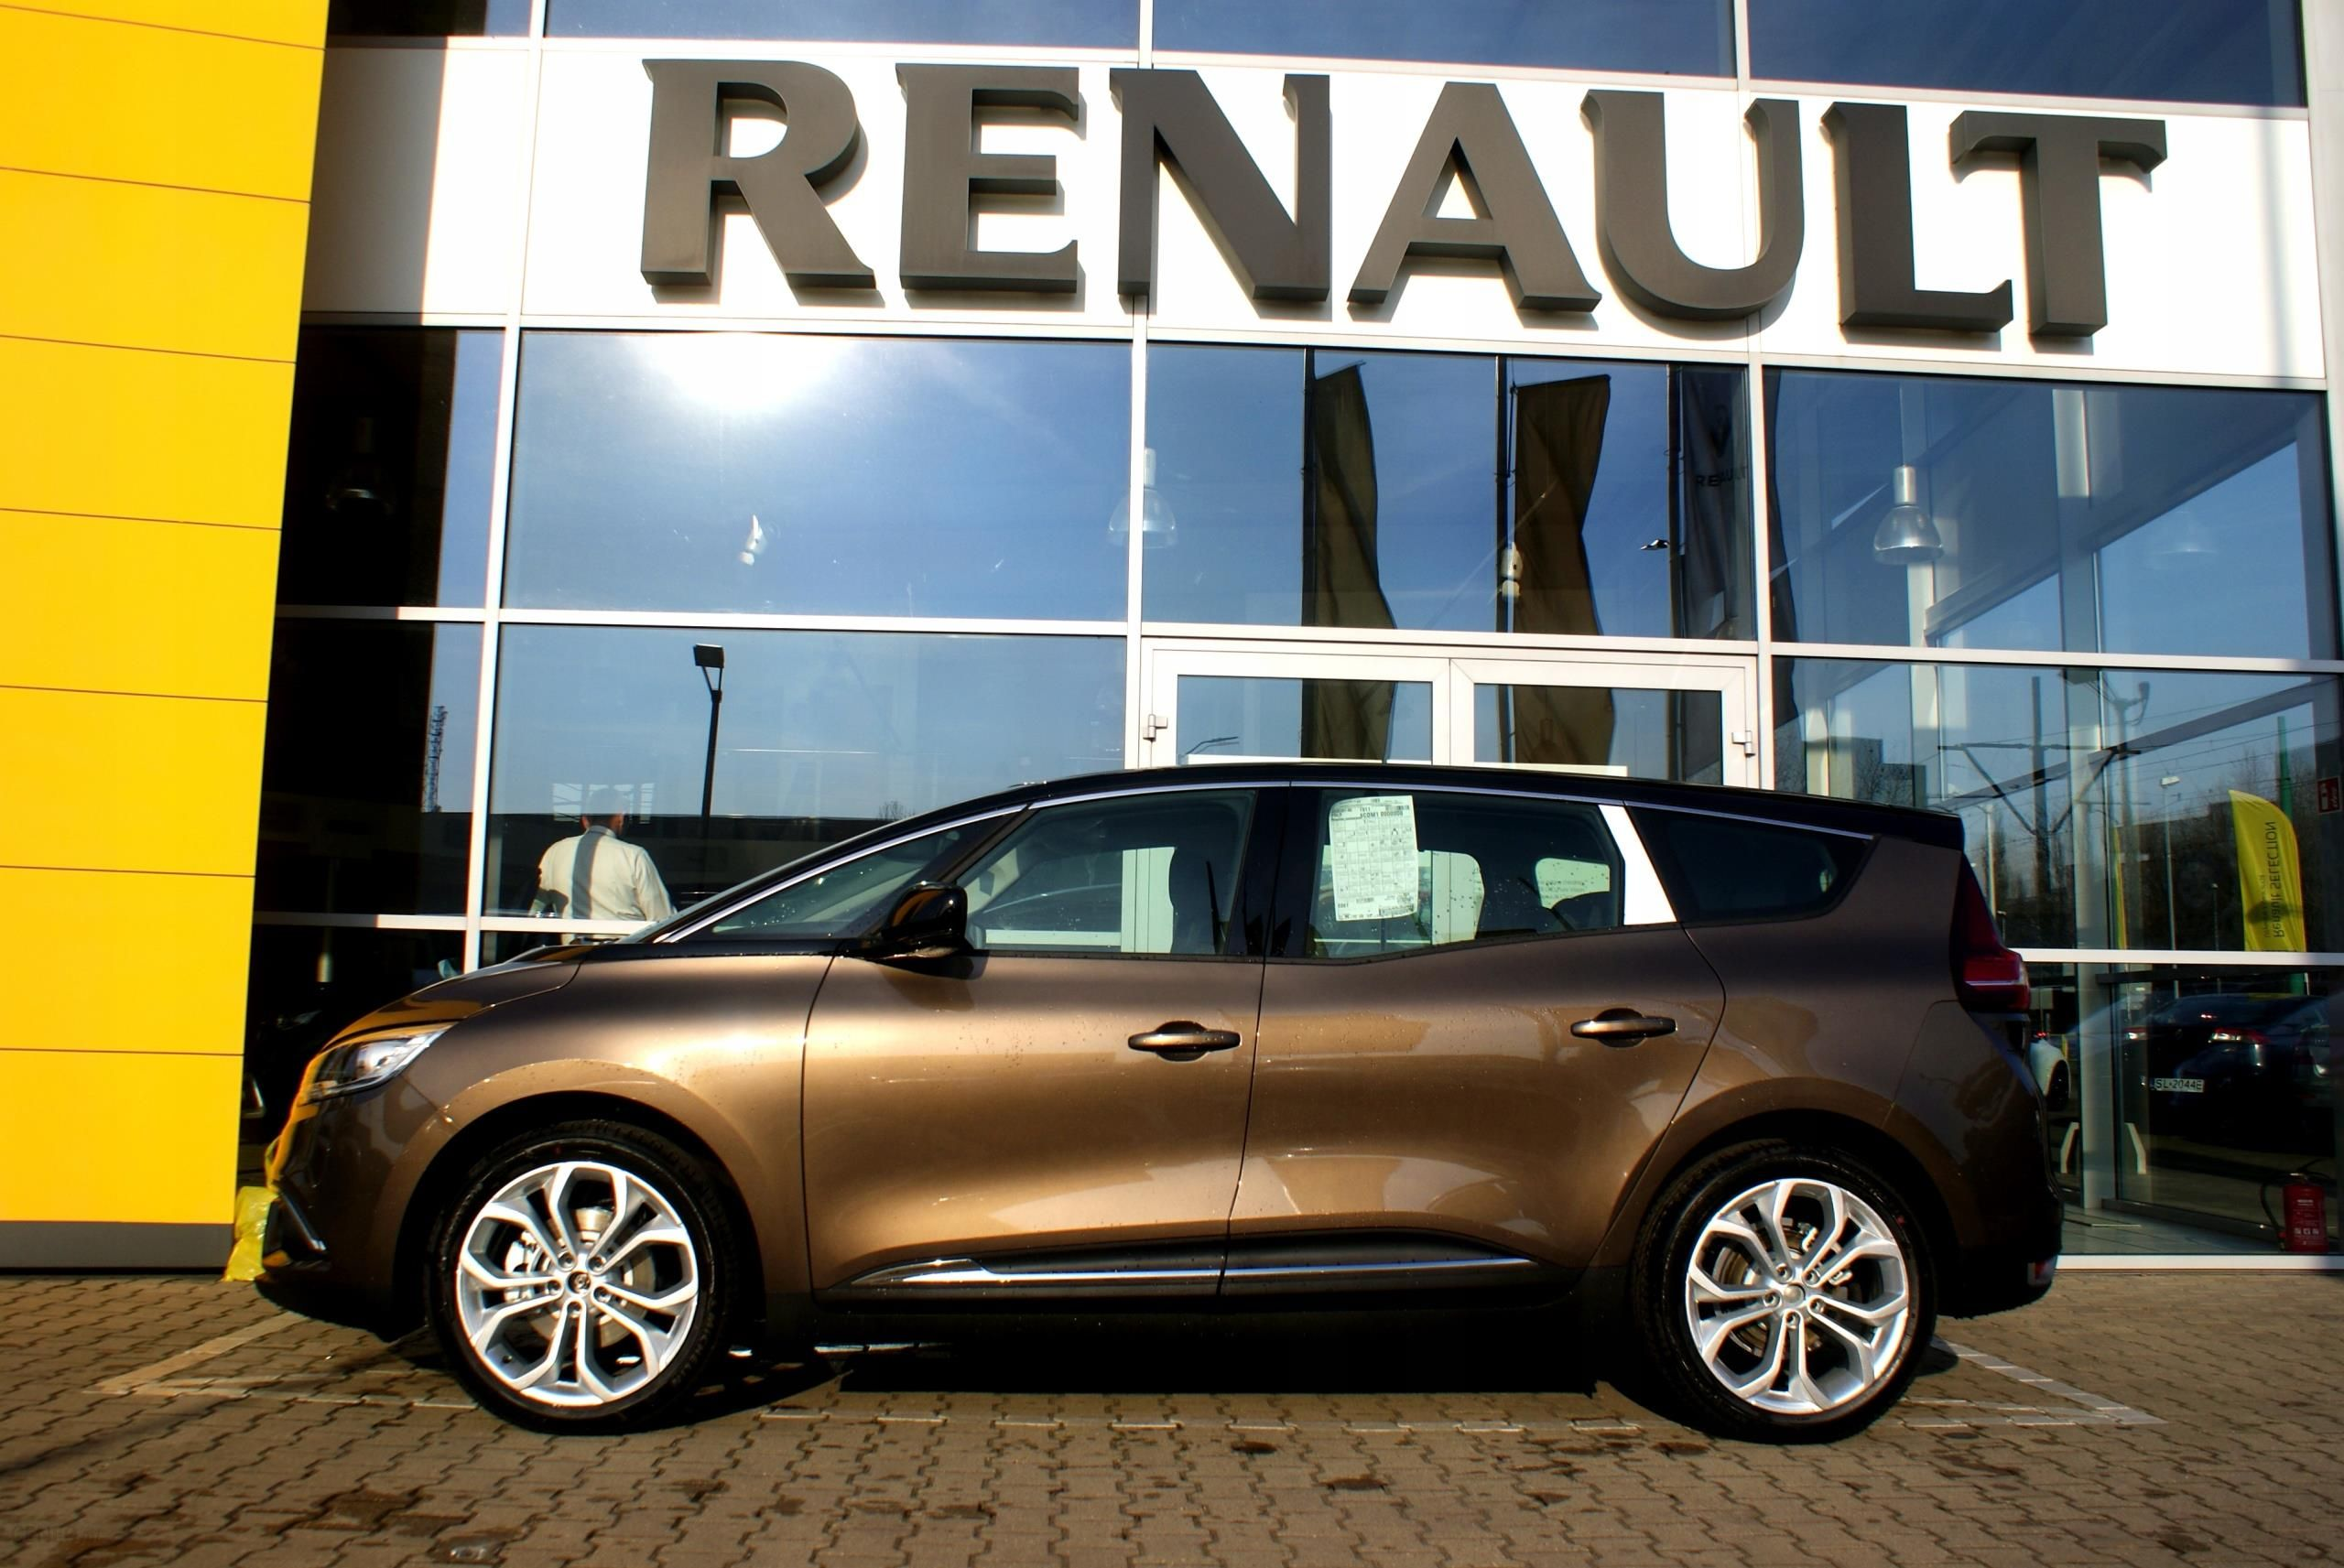 renault scenic grand 1 3 tce fap zen nowy opinie i ceny na. Black Bedroom Furniture Sets. Home Design Ideas